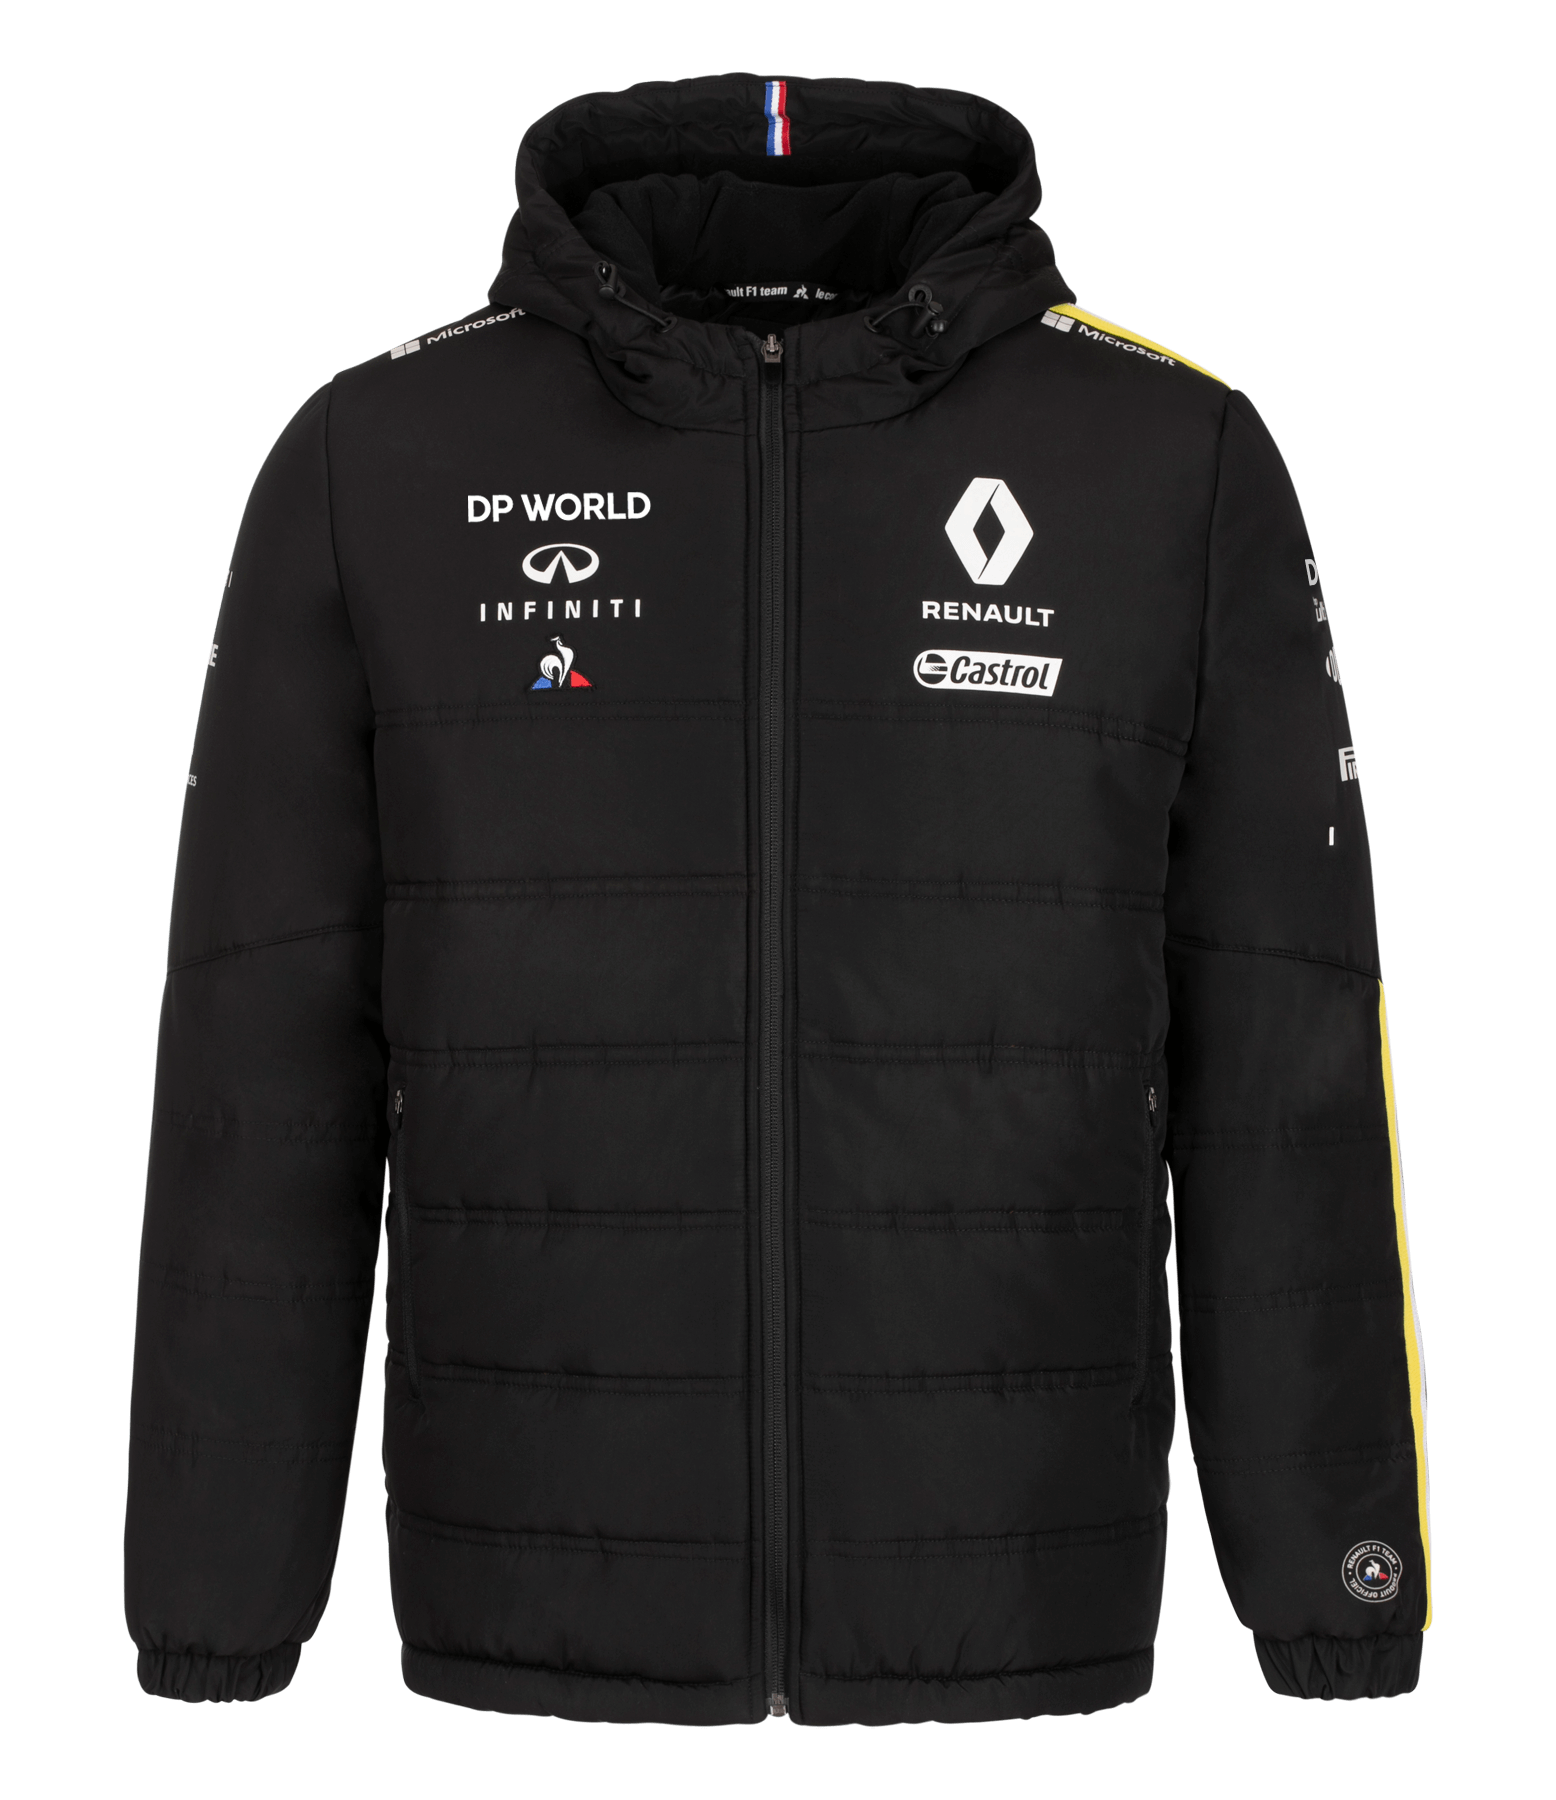 RENAULT DP WORLD F1® TEAM 2020 jacket